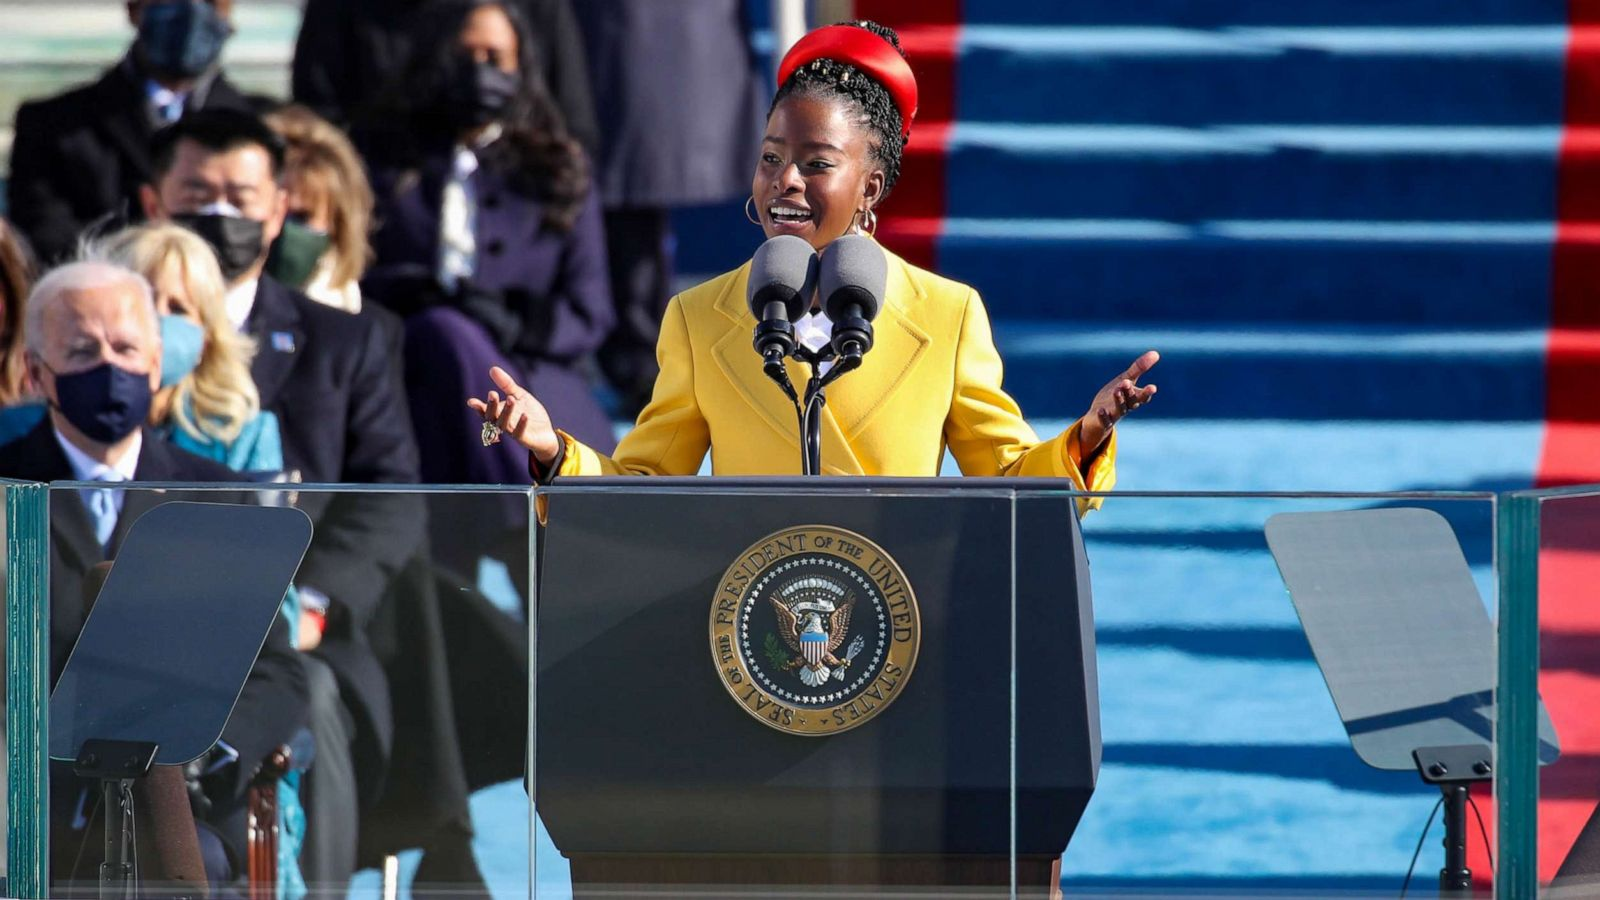 22-year-old Amanda Gorman becomes youngest poet to read at inauguration -  ABC News